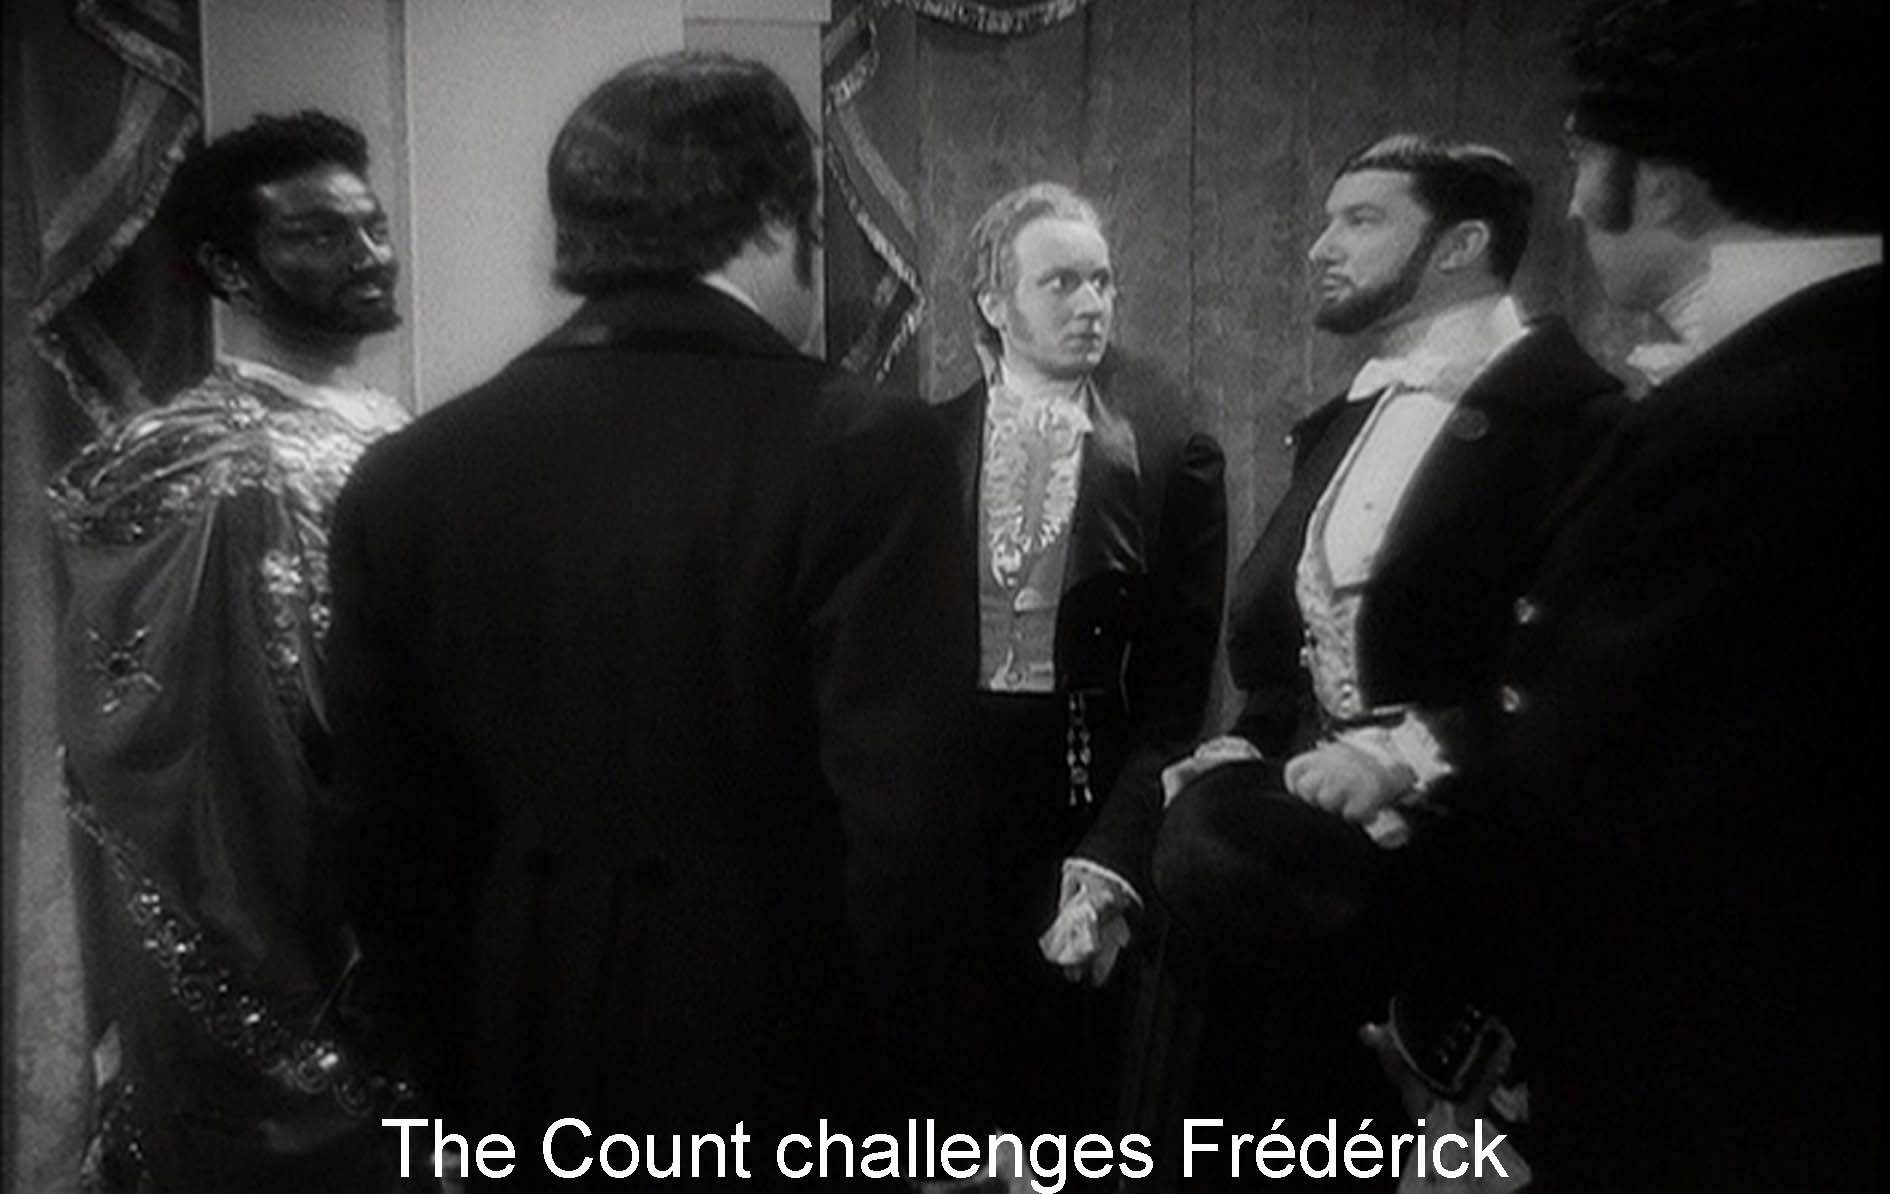 The Count challenges Frédérick